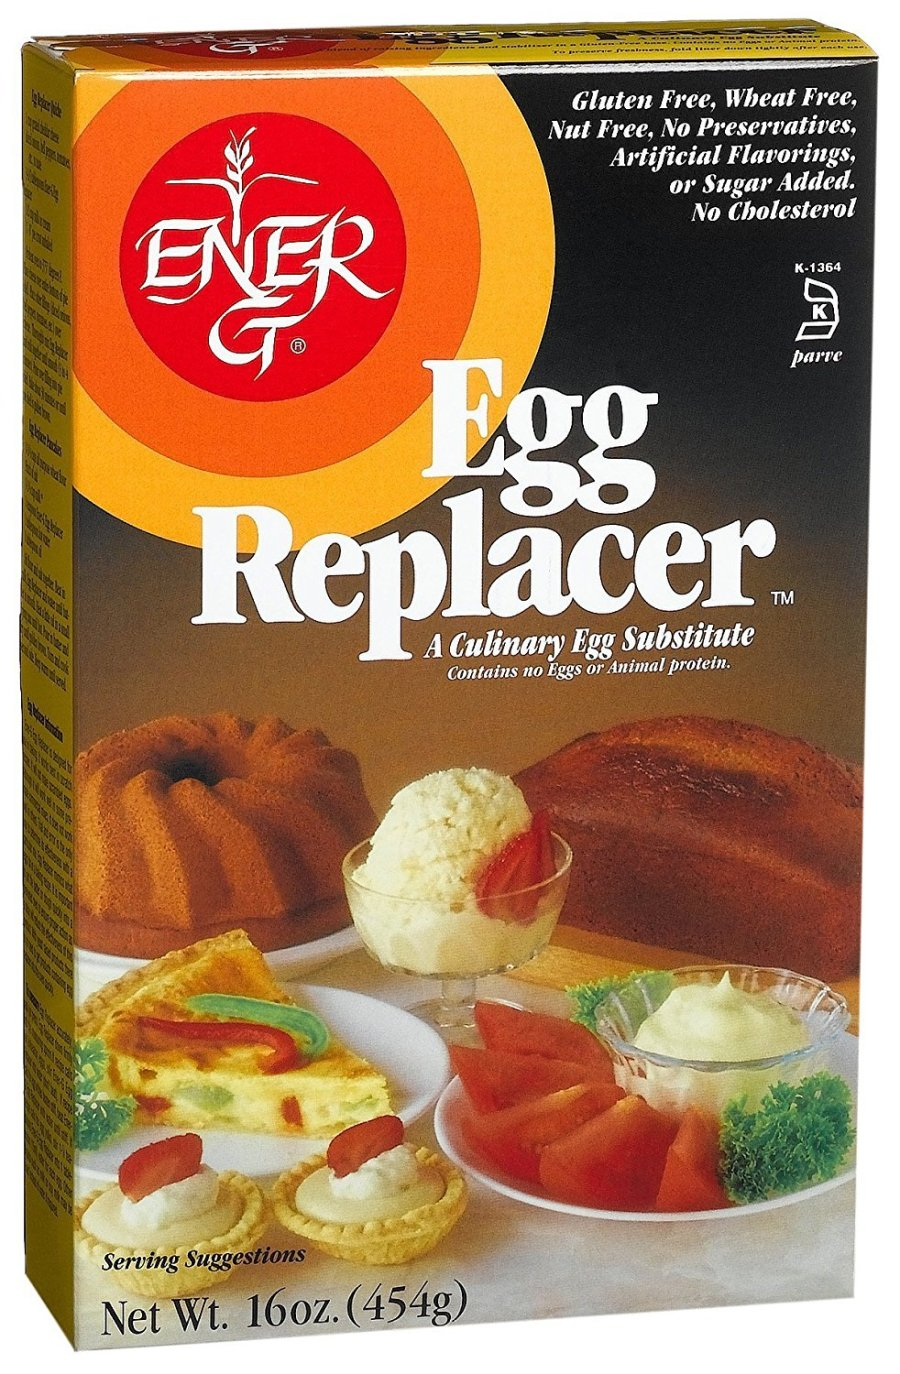 ener-g-egg-replacer